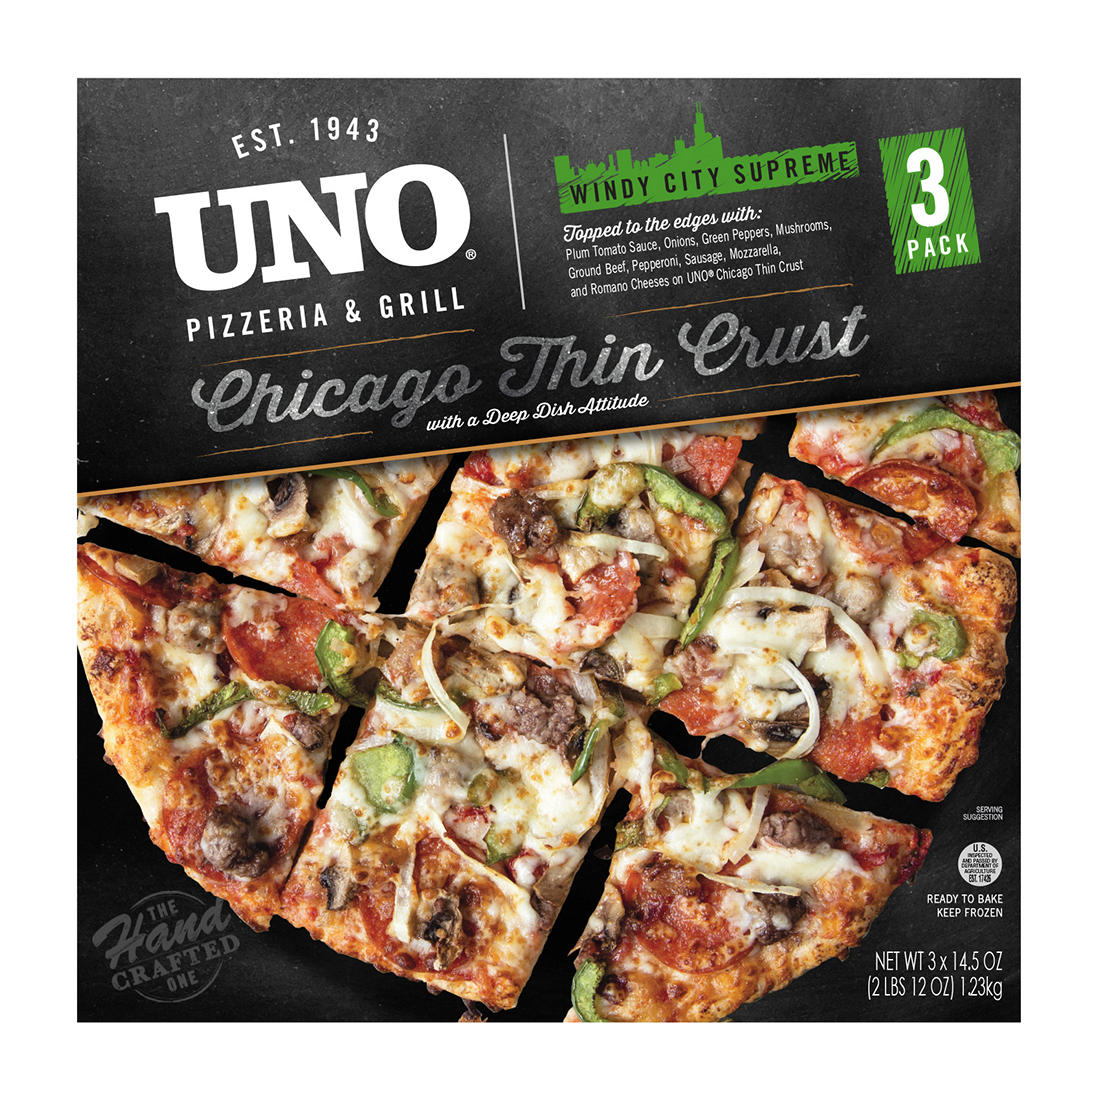 graphic about Uno Coupons Printable referred to as Uno Pizzeria and Grill Chicago Slim Crust, 3 ct.